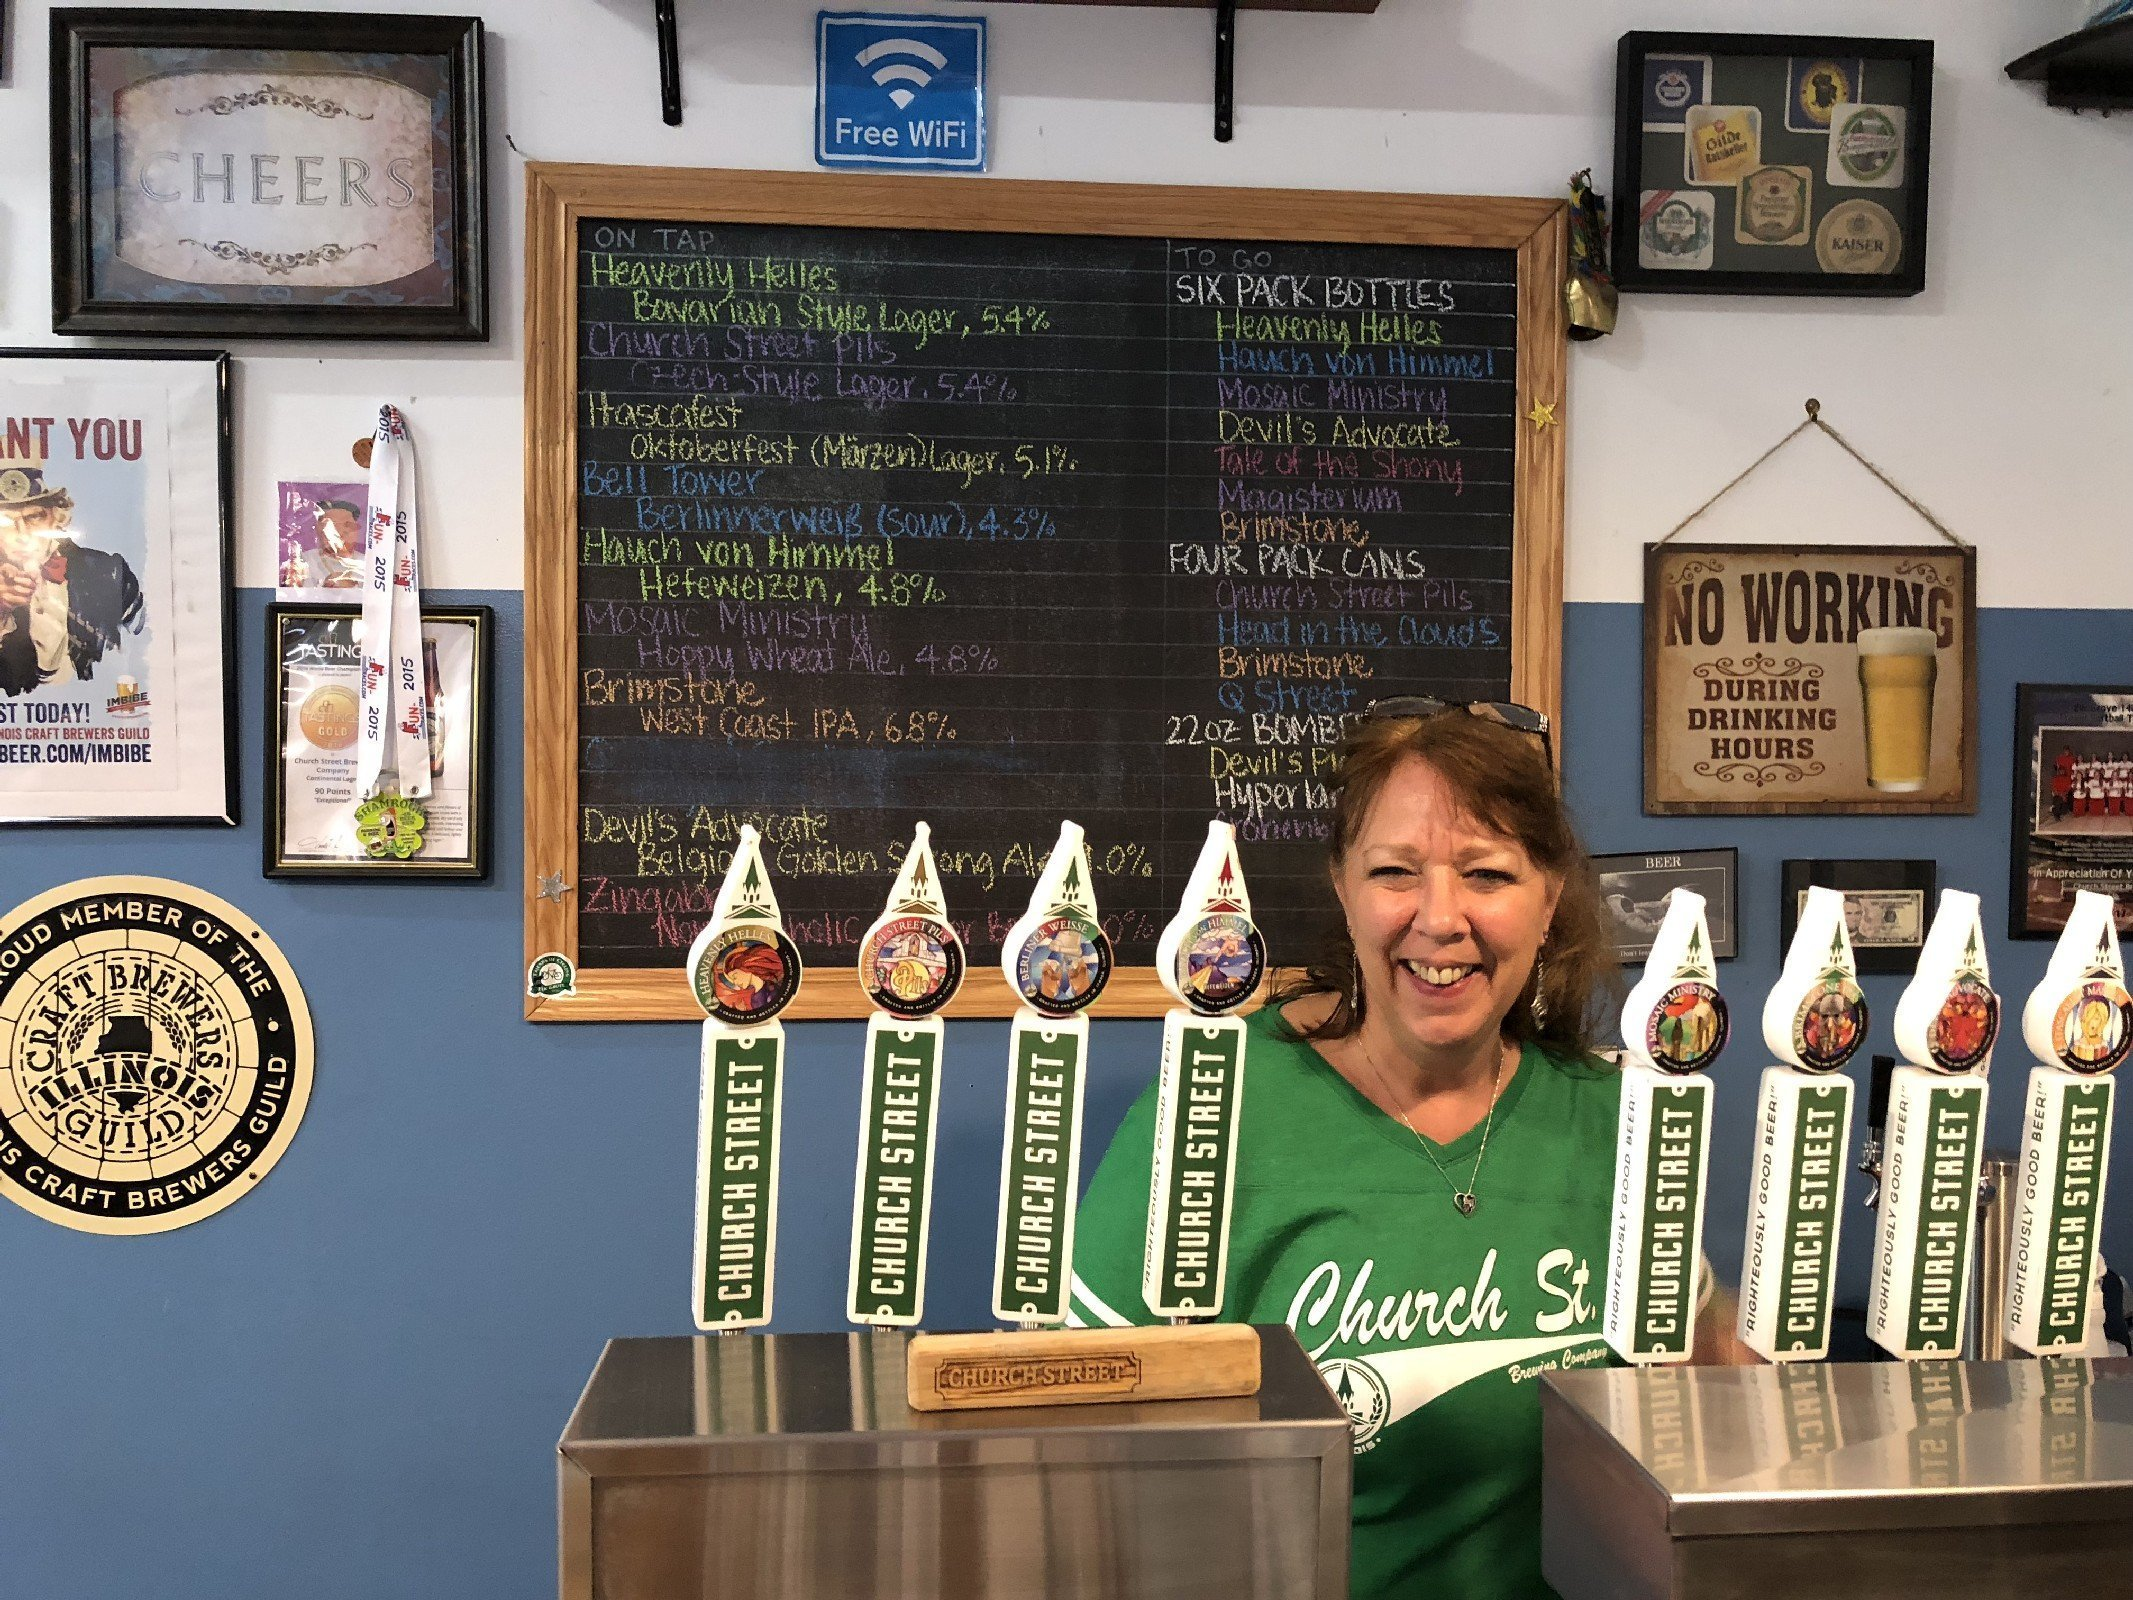 Church Street Brewing Co. in Itasca, IL by Jets Like Taxis / Hopsmash